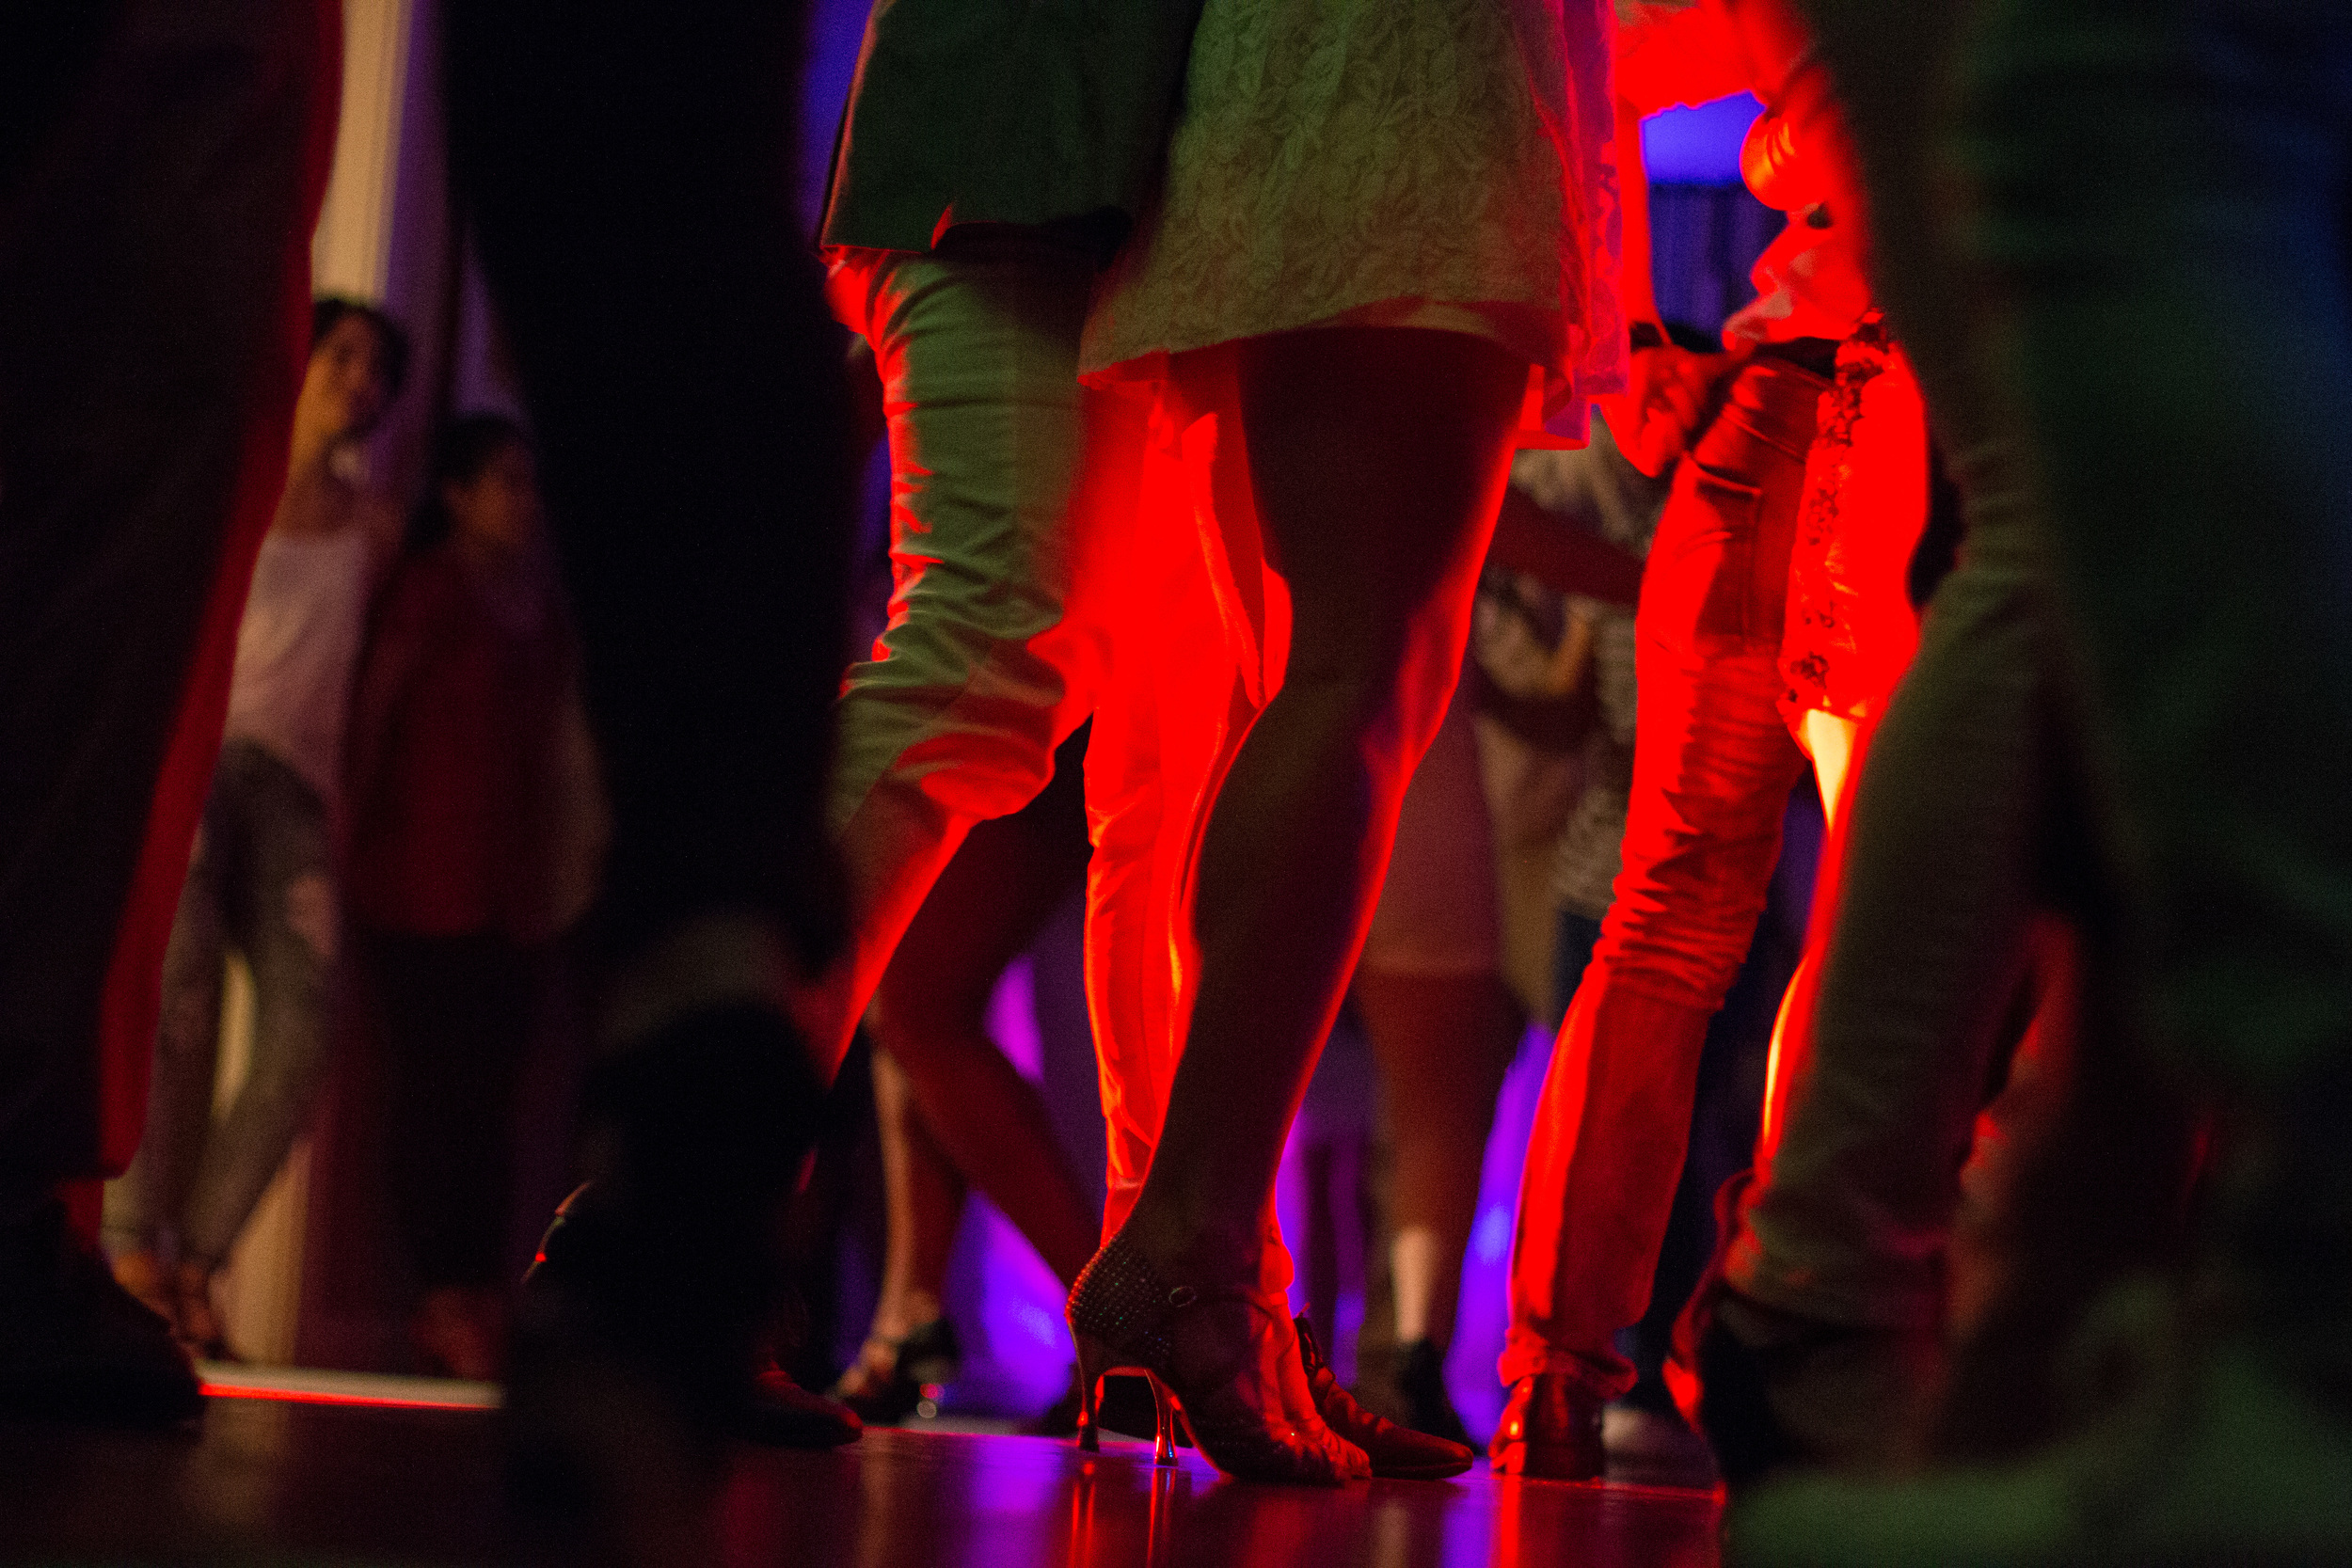 In the bachata room, couples crowd closely on the dance floor: women in their high heels and men in flat shoes.